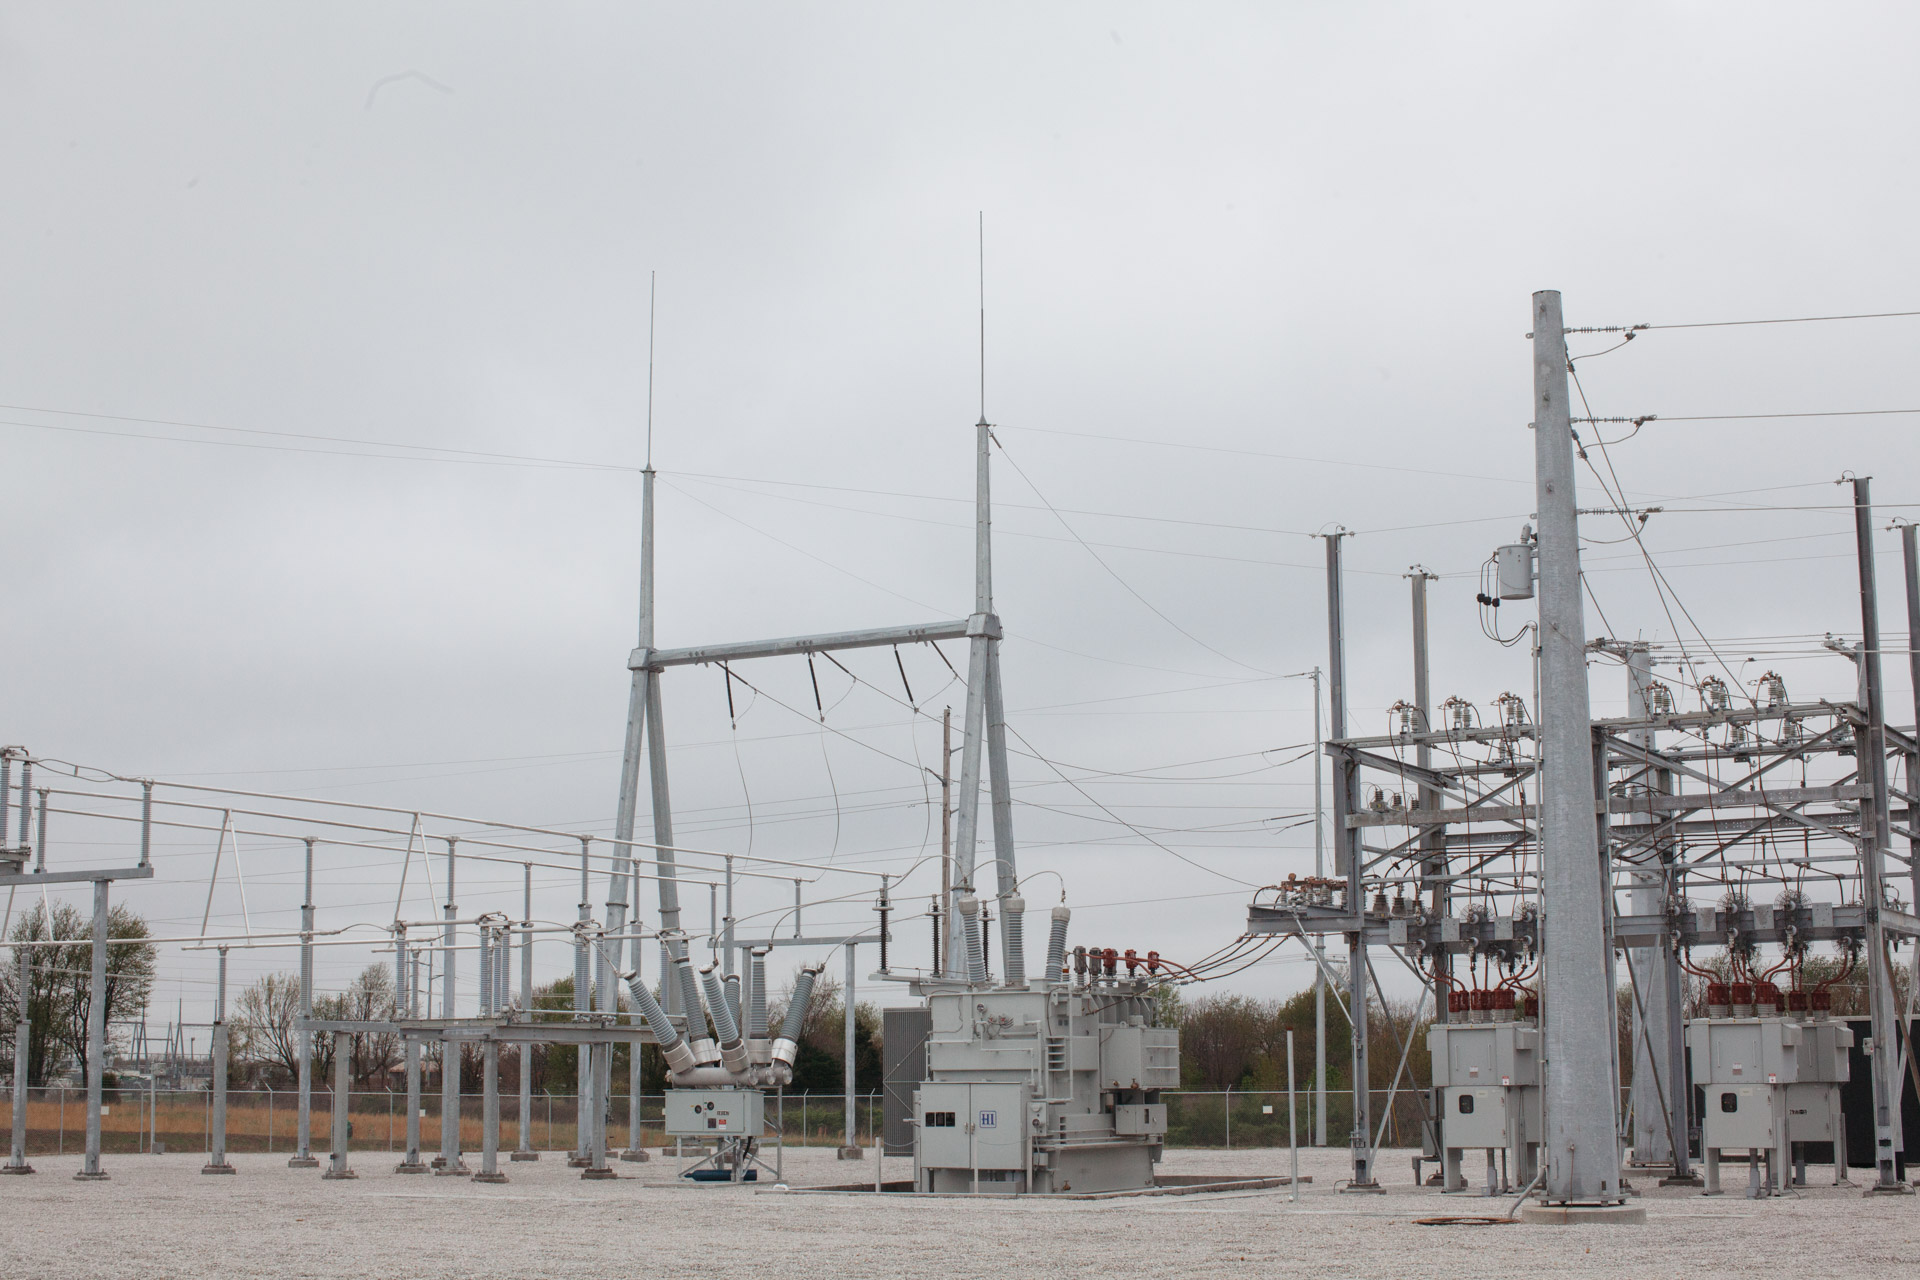 Image of completed Empire Substation in Joplin, MO.